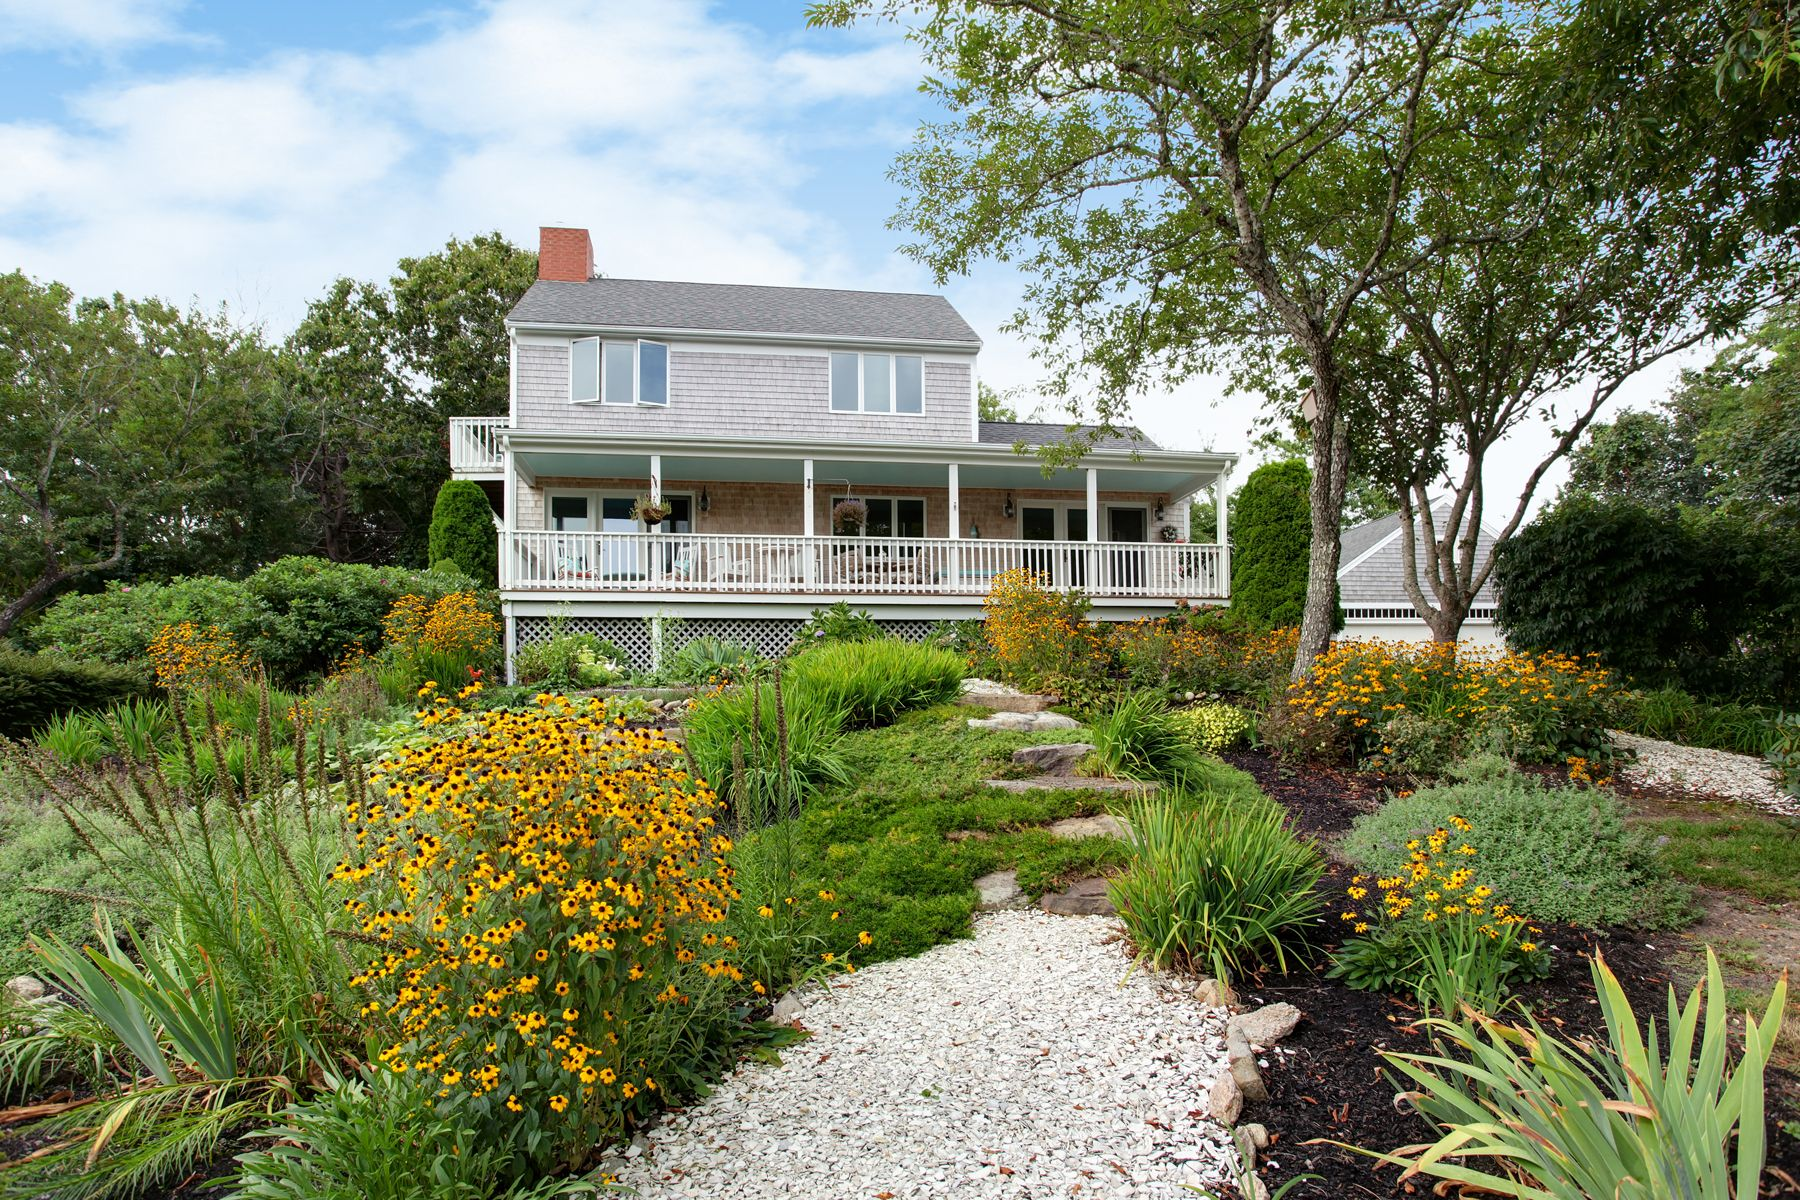 Single Family Homes for Sale at Sandy Neck Beach with Water Views 31 Leonard Road East Sandwich, Massachusetts 02537 United States